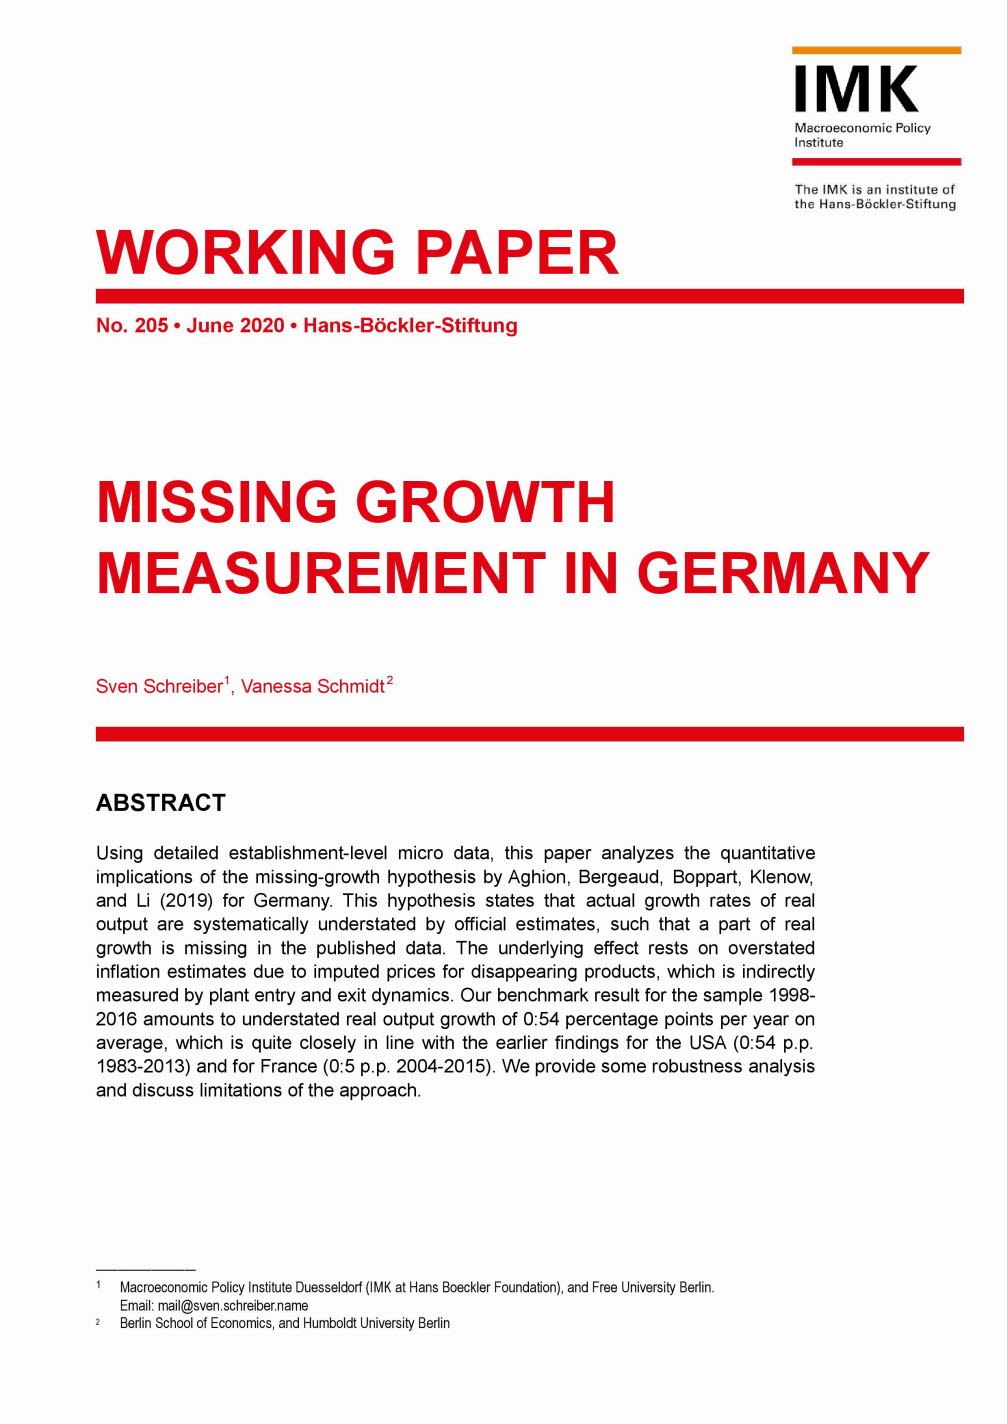 Missing growth measurement in Germany